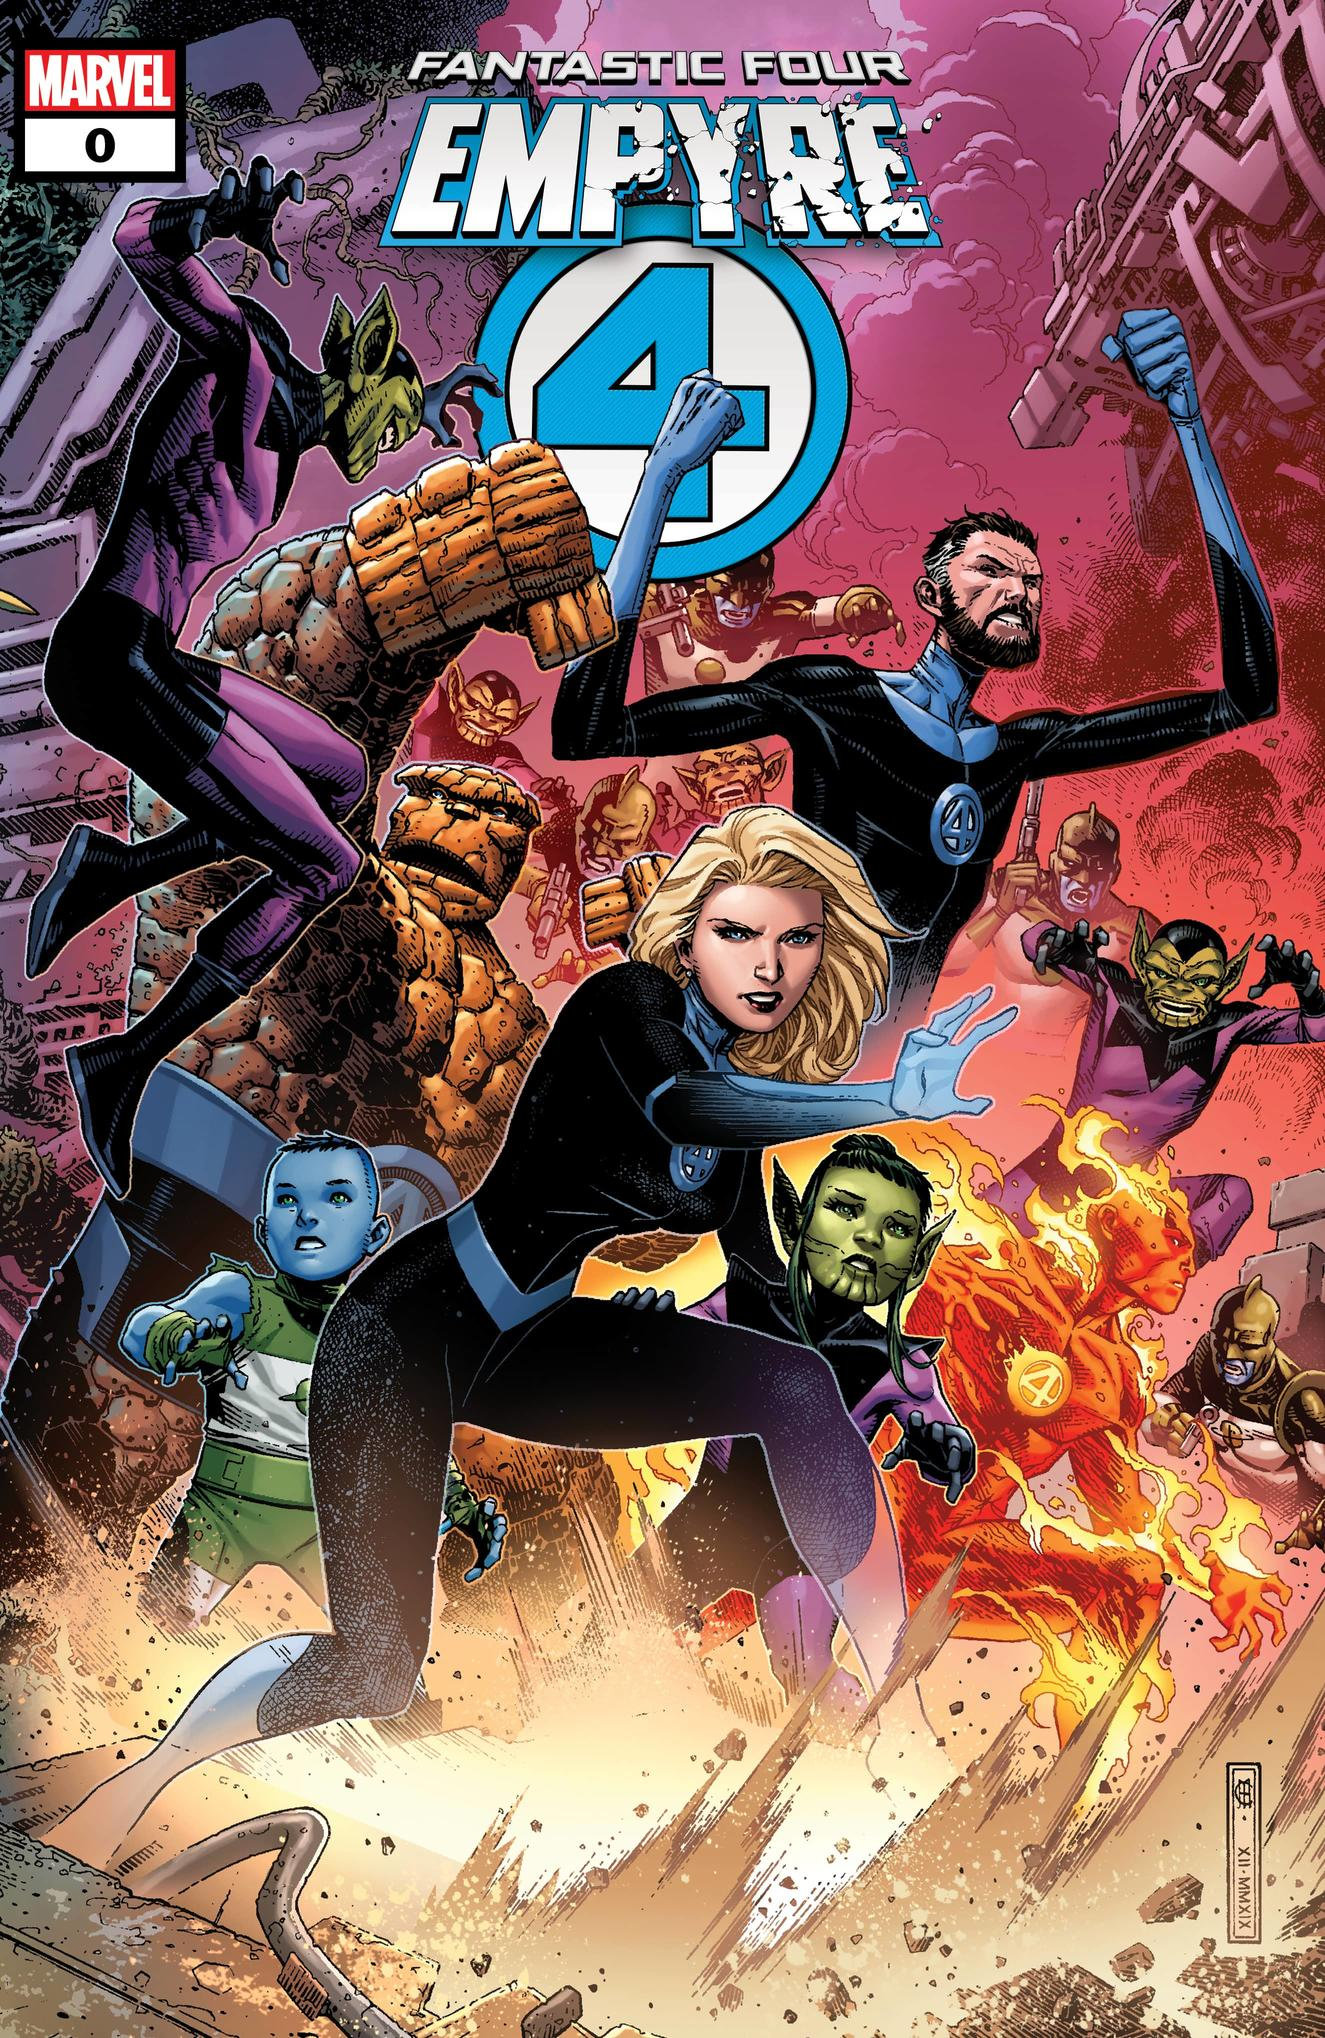 EMPYRE #0: FANTASTIC FOUR cover by Jim Cheung